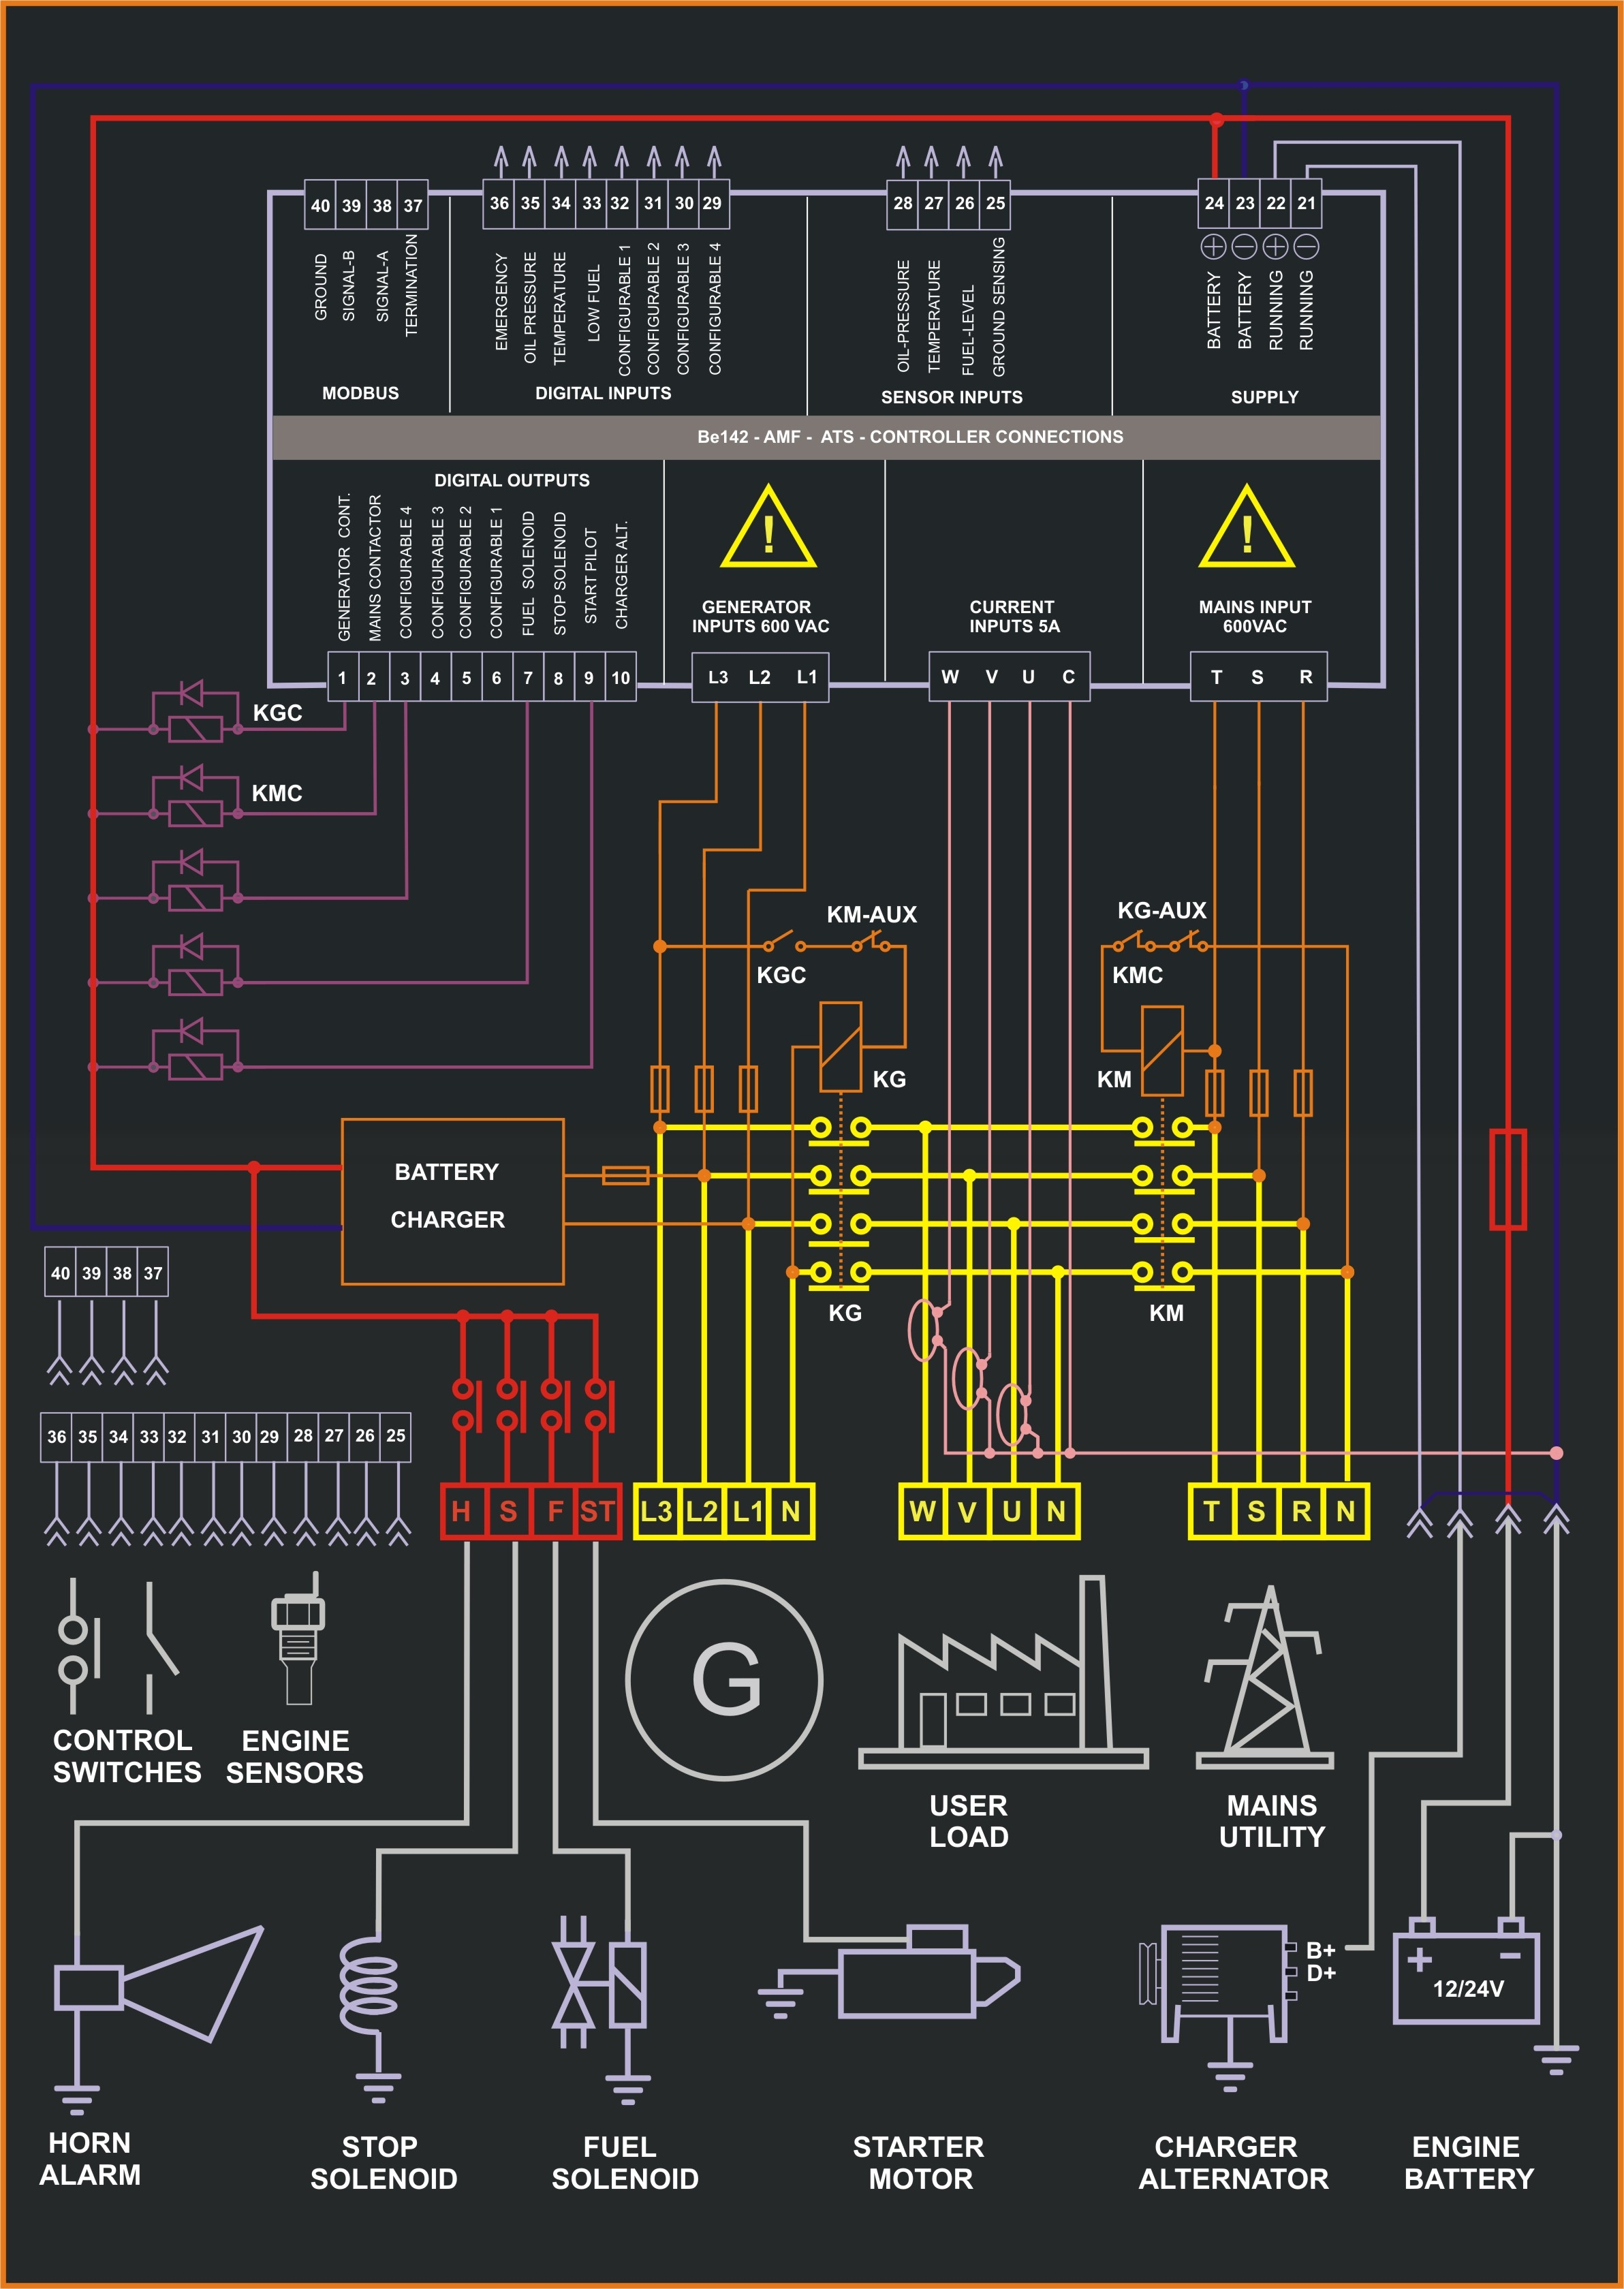 Control panel circuit diagram pdf control panel circuit diagram genset controller control panel diagram at gsmx.co